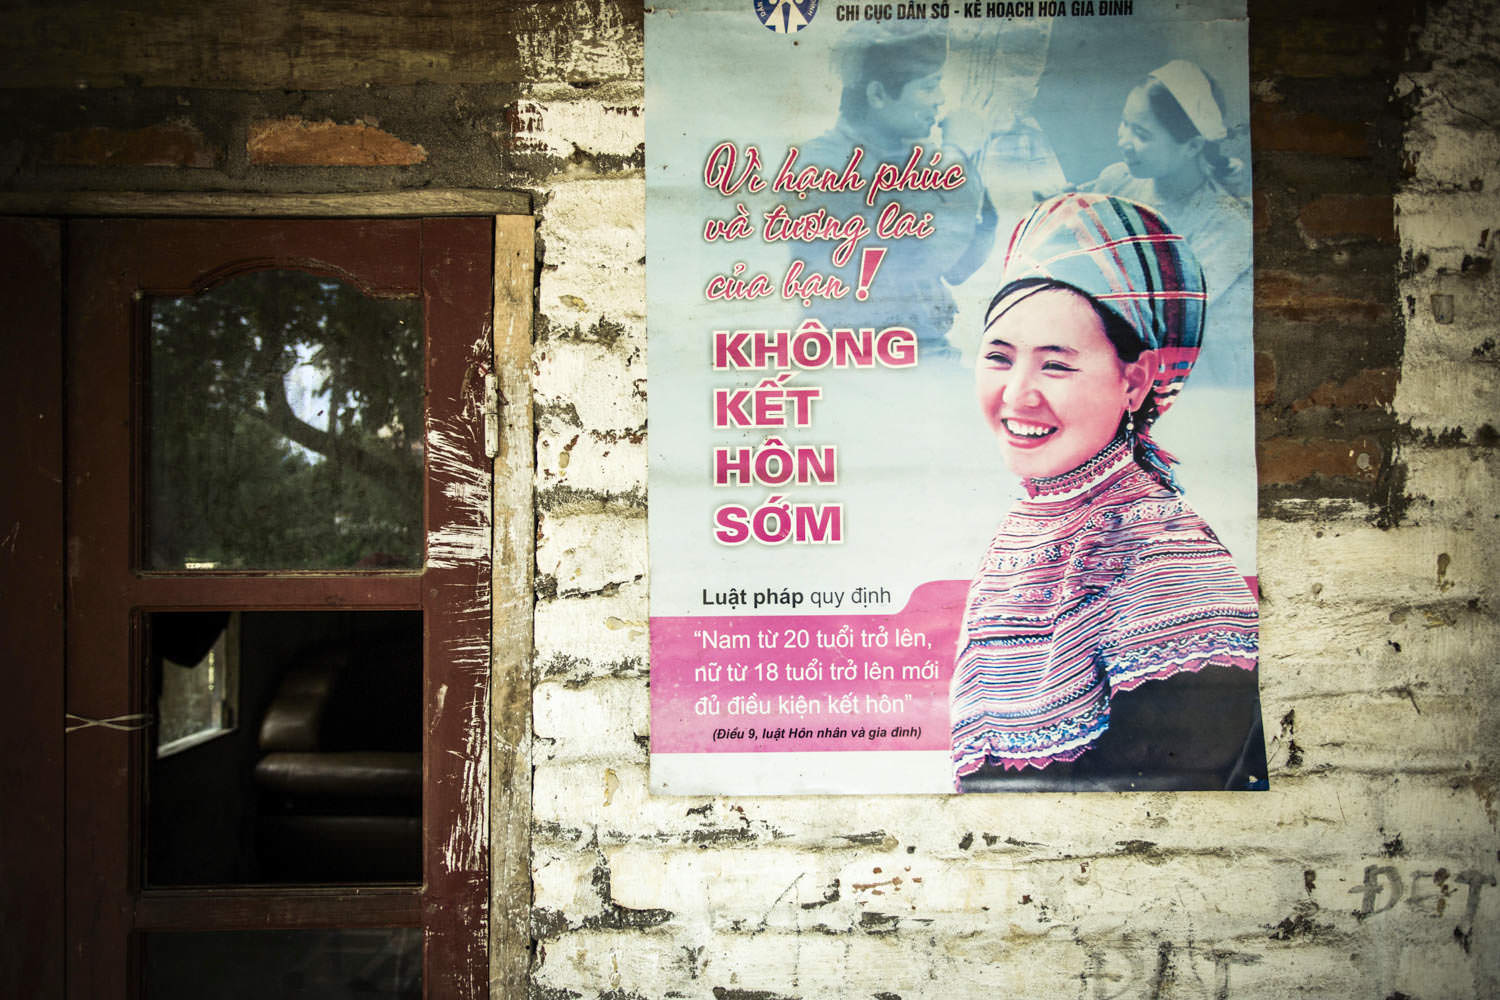 Informative panel for Hmong community | Documentary photographer in Vietnam Francis Roux